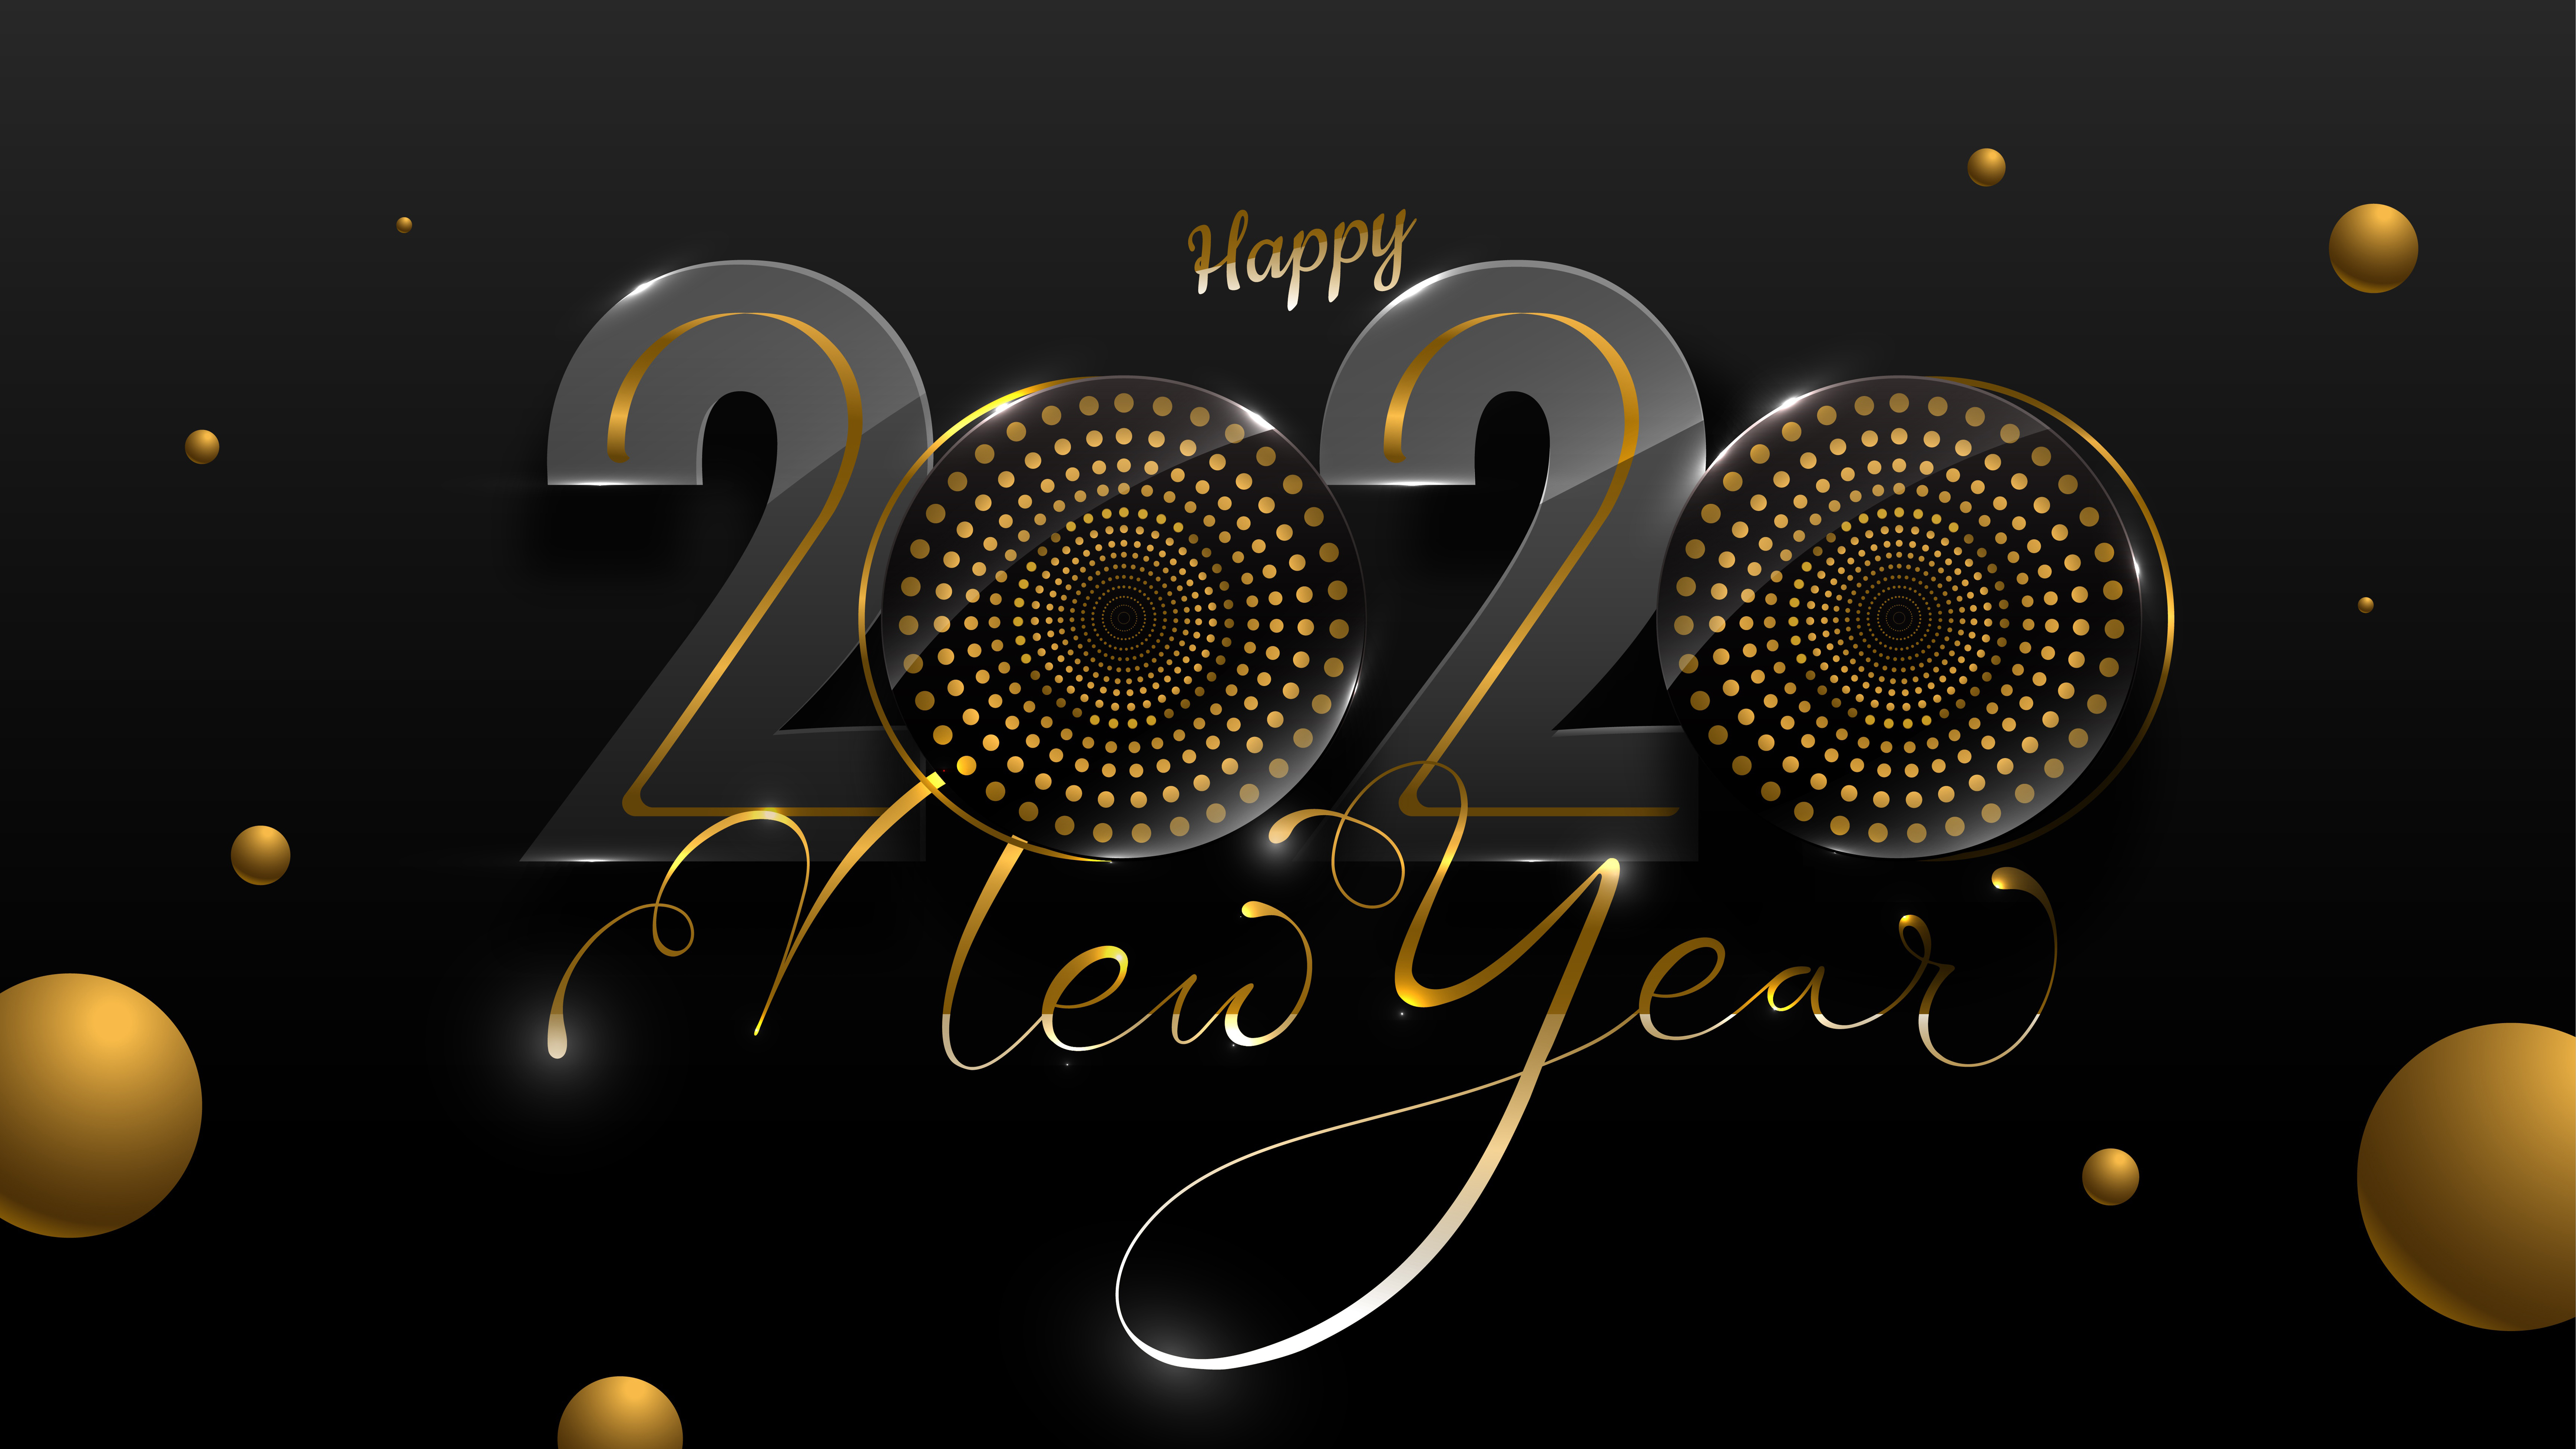 2020 Happy New Year 4K 8K Wallpapers HD Wallpapers 7680x4320